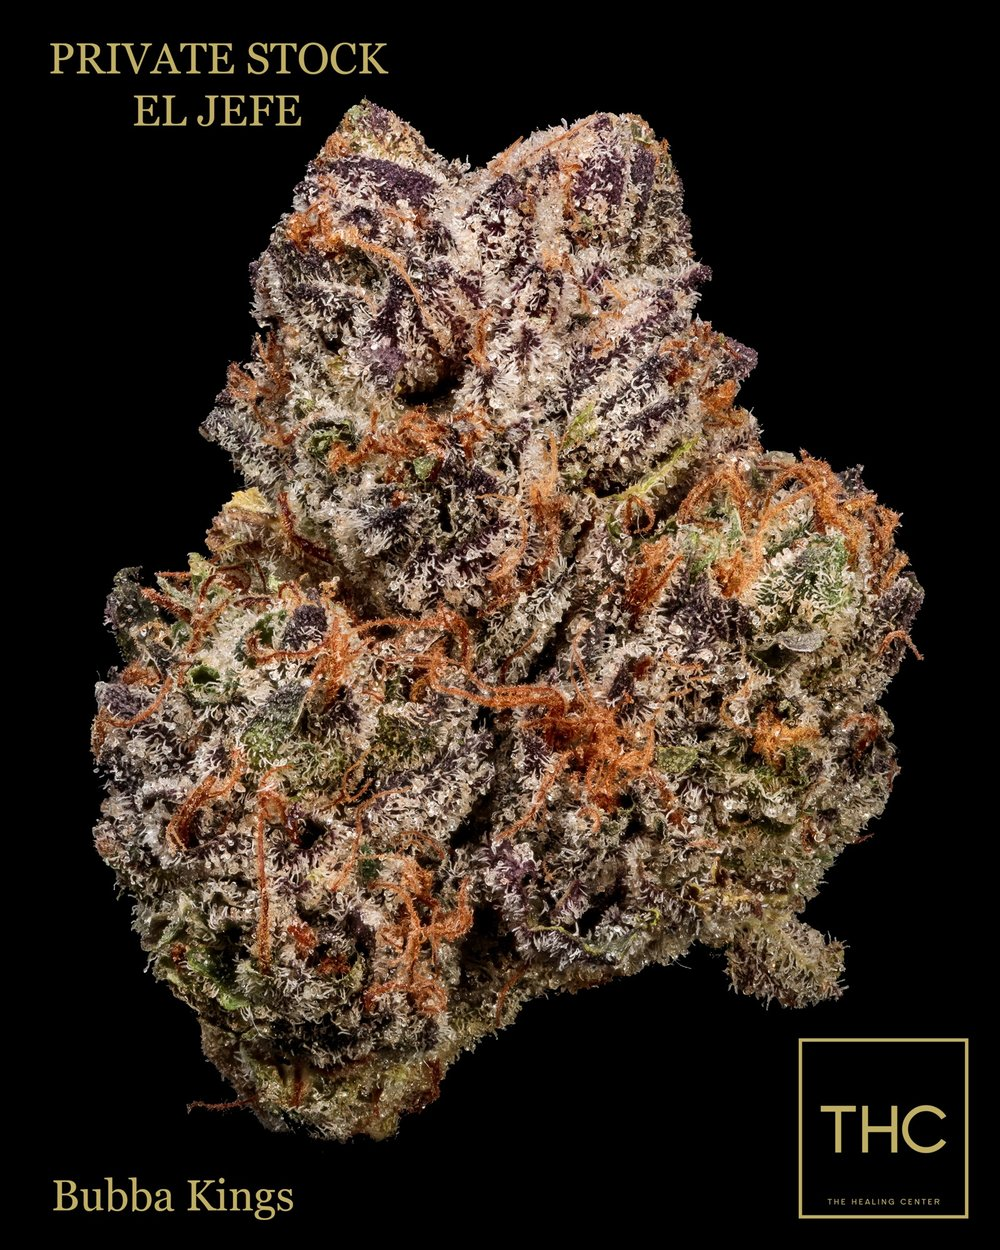 Private Stock El Jefe Bubba Kings THC.jpg